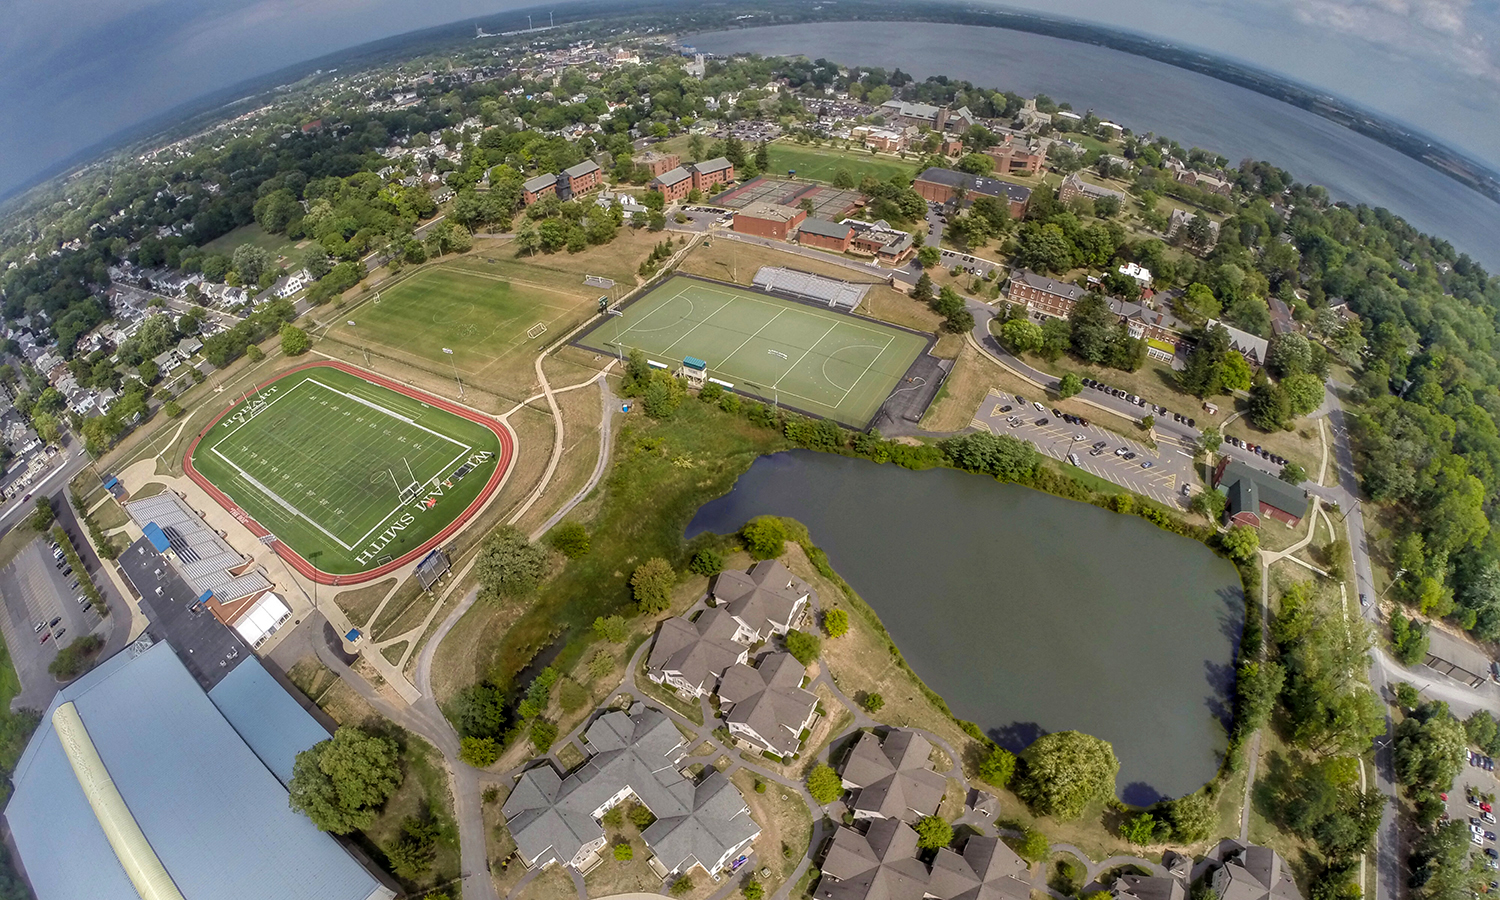 Paul 'P. Money' Ciaccia takes the drone up for a zesty picture of Odellski's pond.